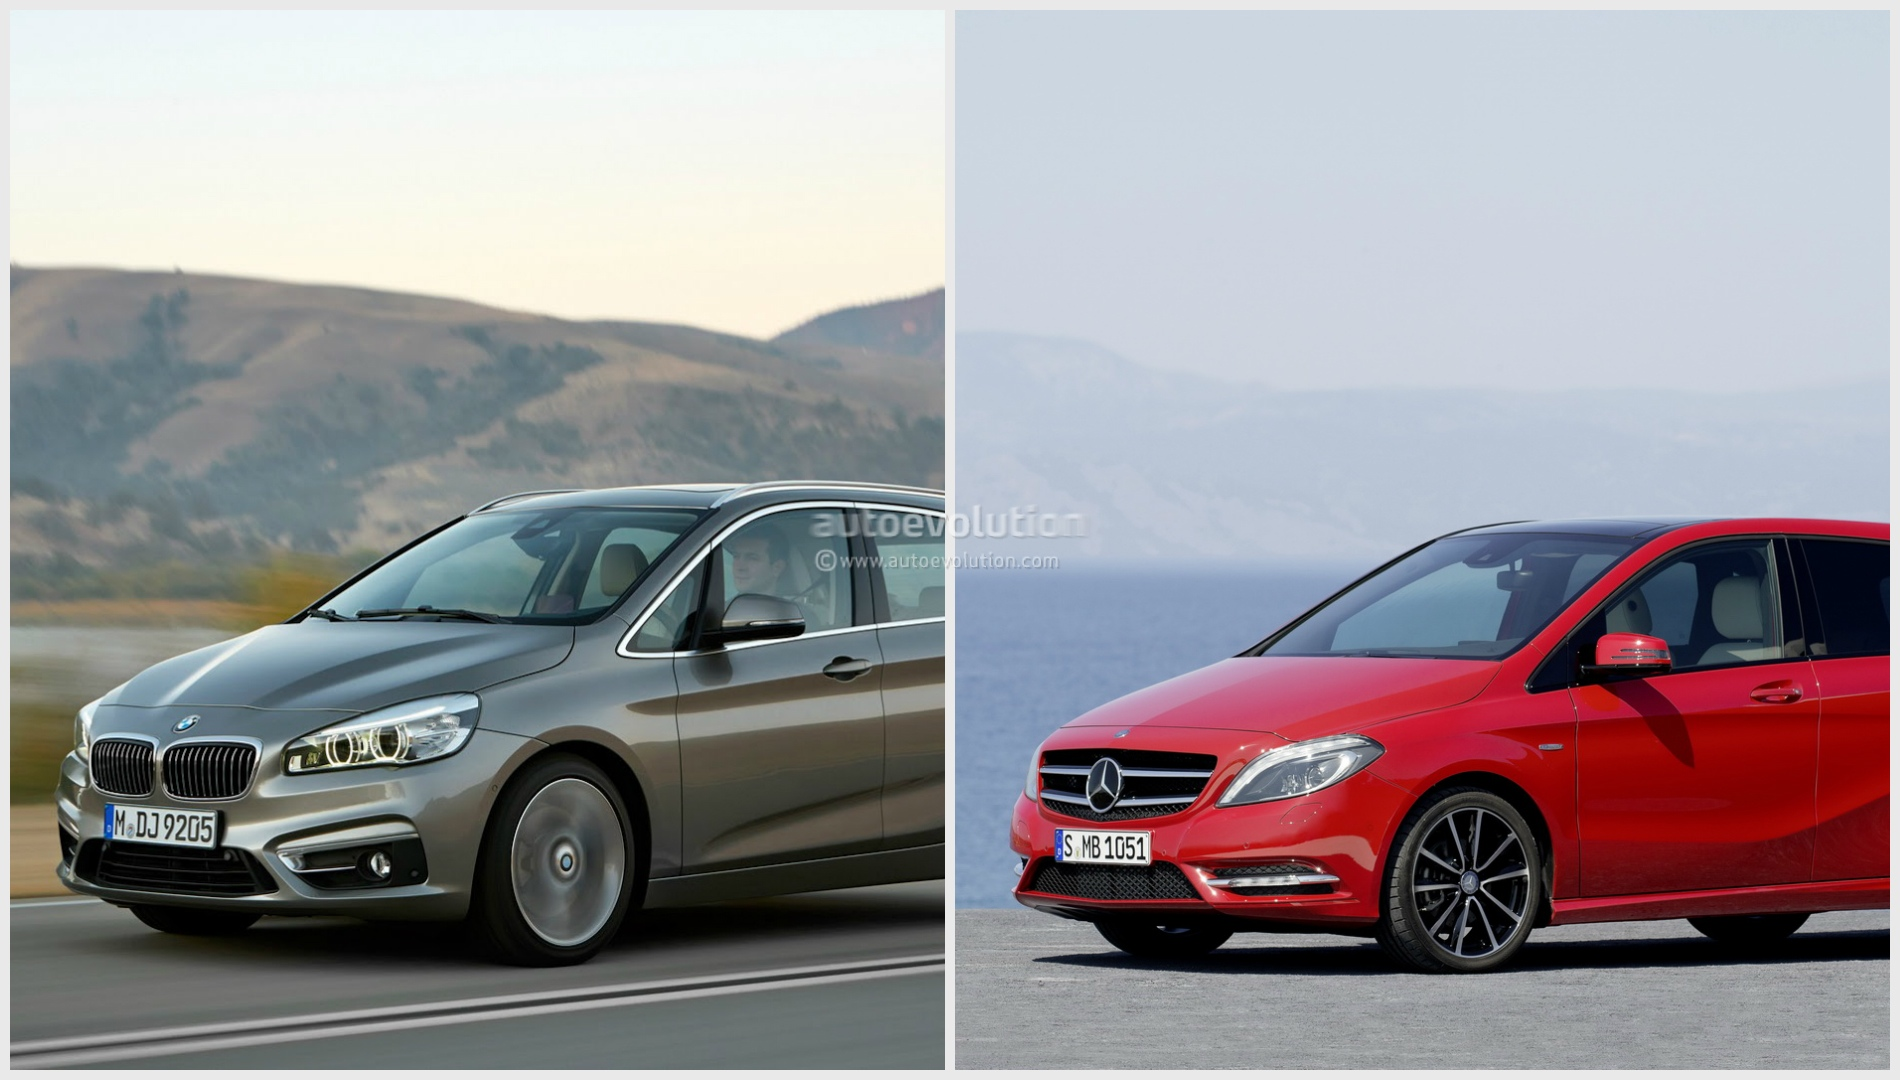 Bmw 2 series vs mercedes benz b class photo comparison for Mercedes benz s series